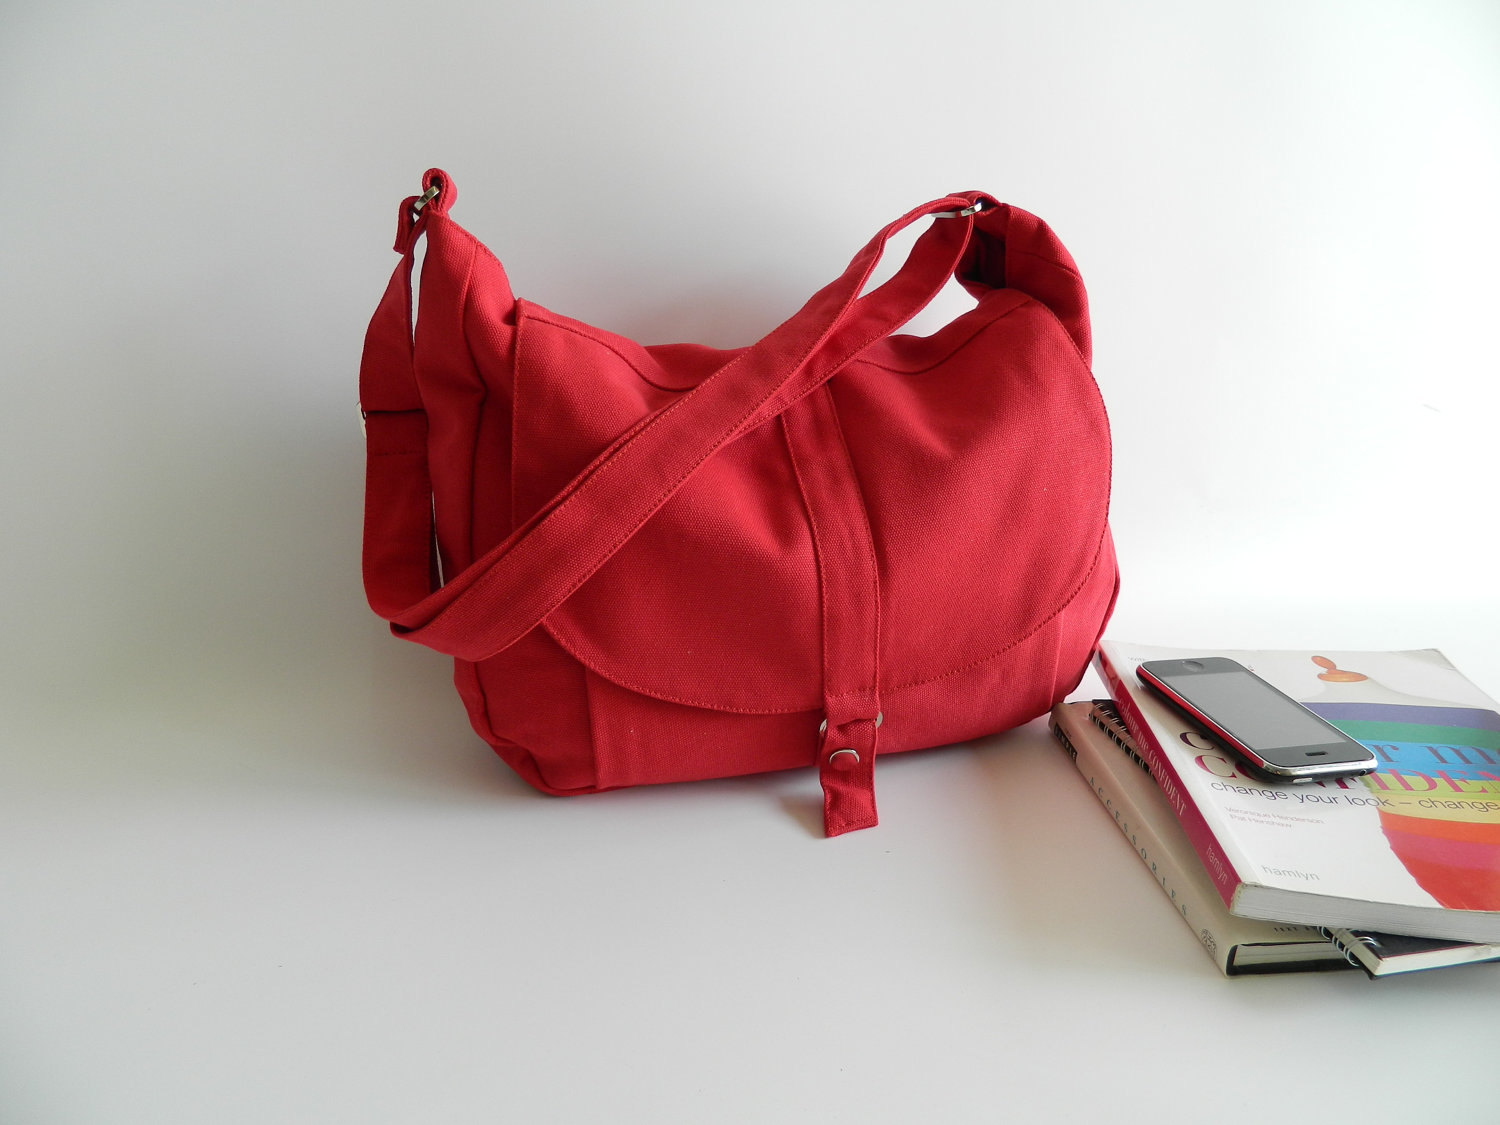 KYLIE 12 Red Messenger Bag with Books.jpg